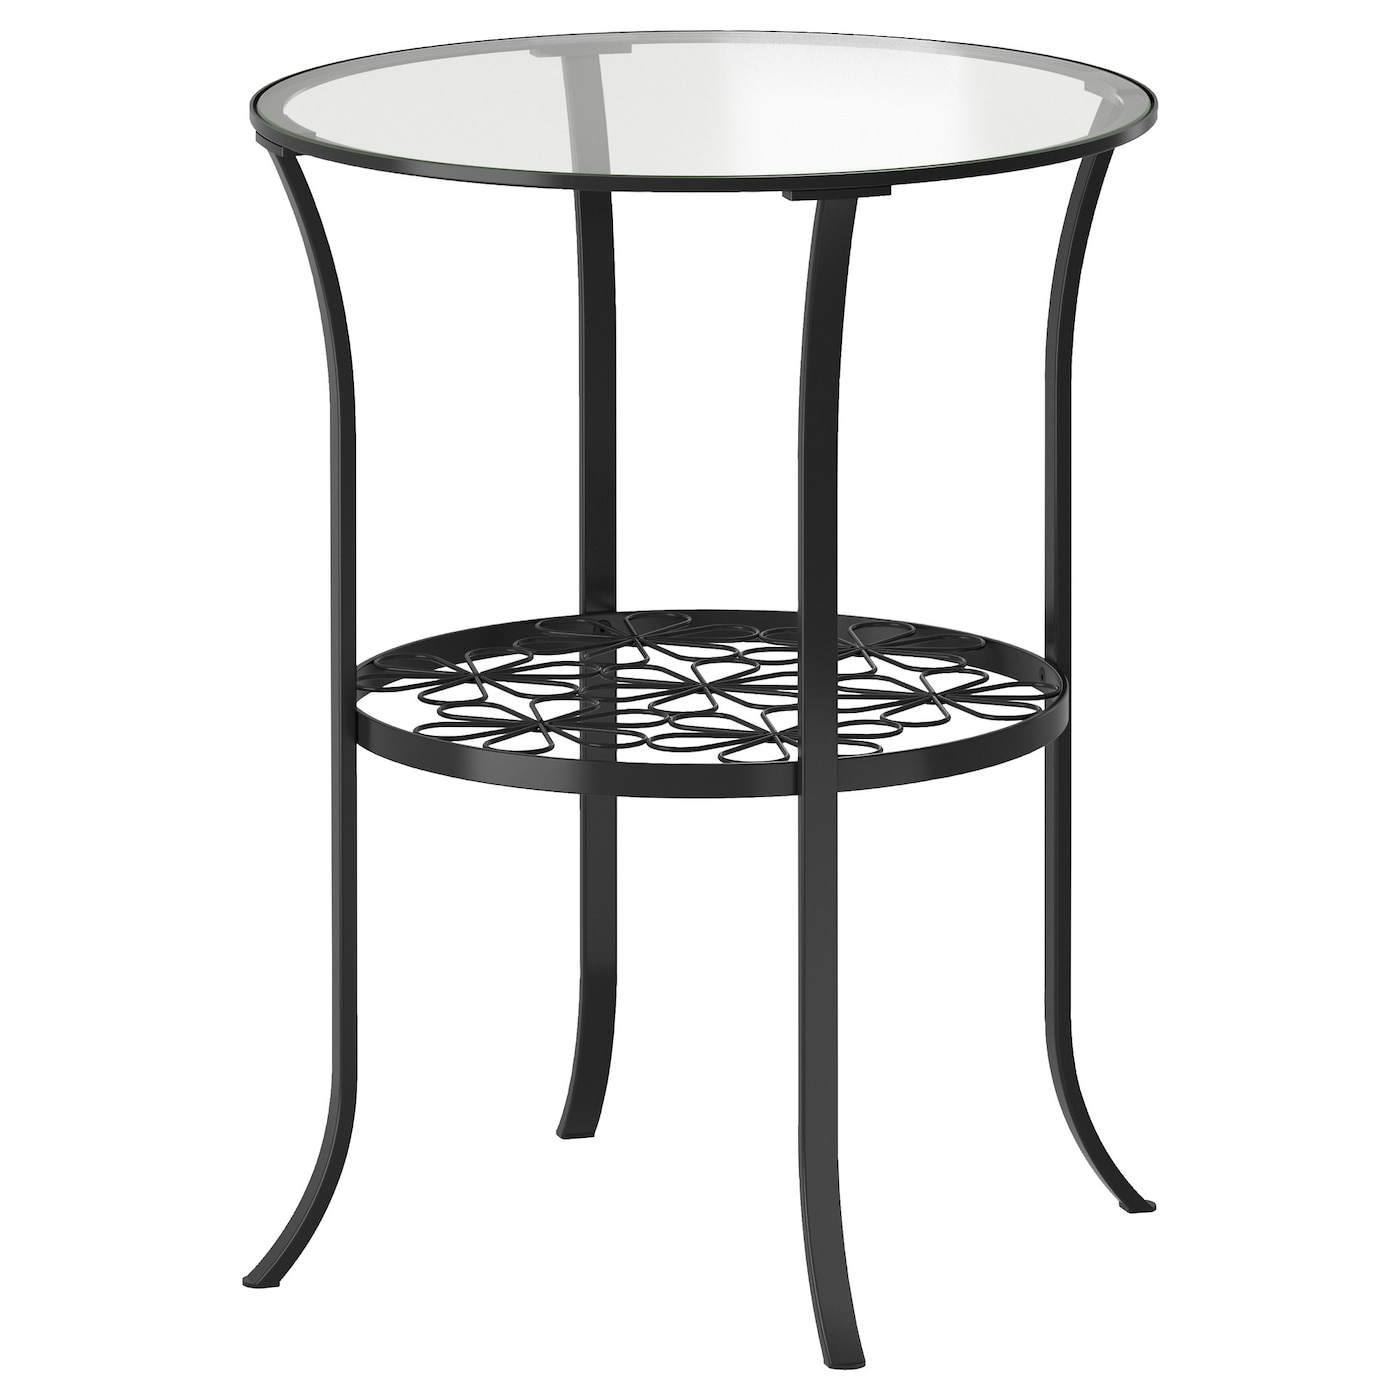 IKEA KLINGSBO side table